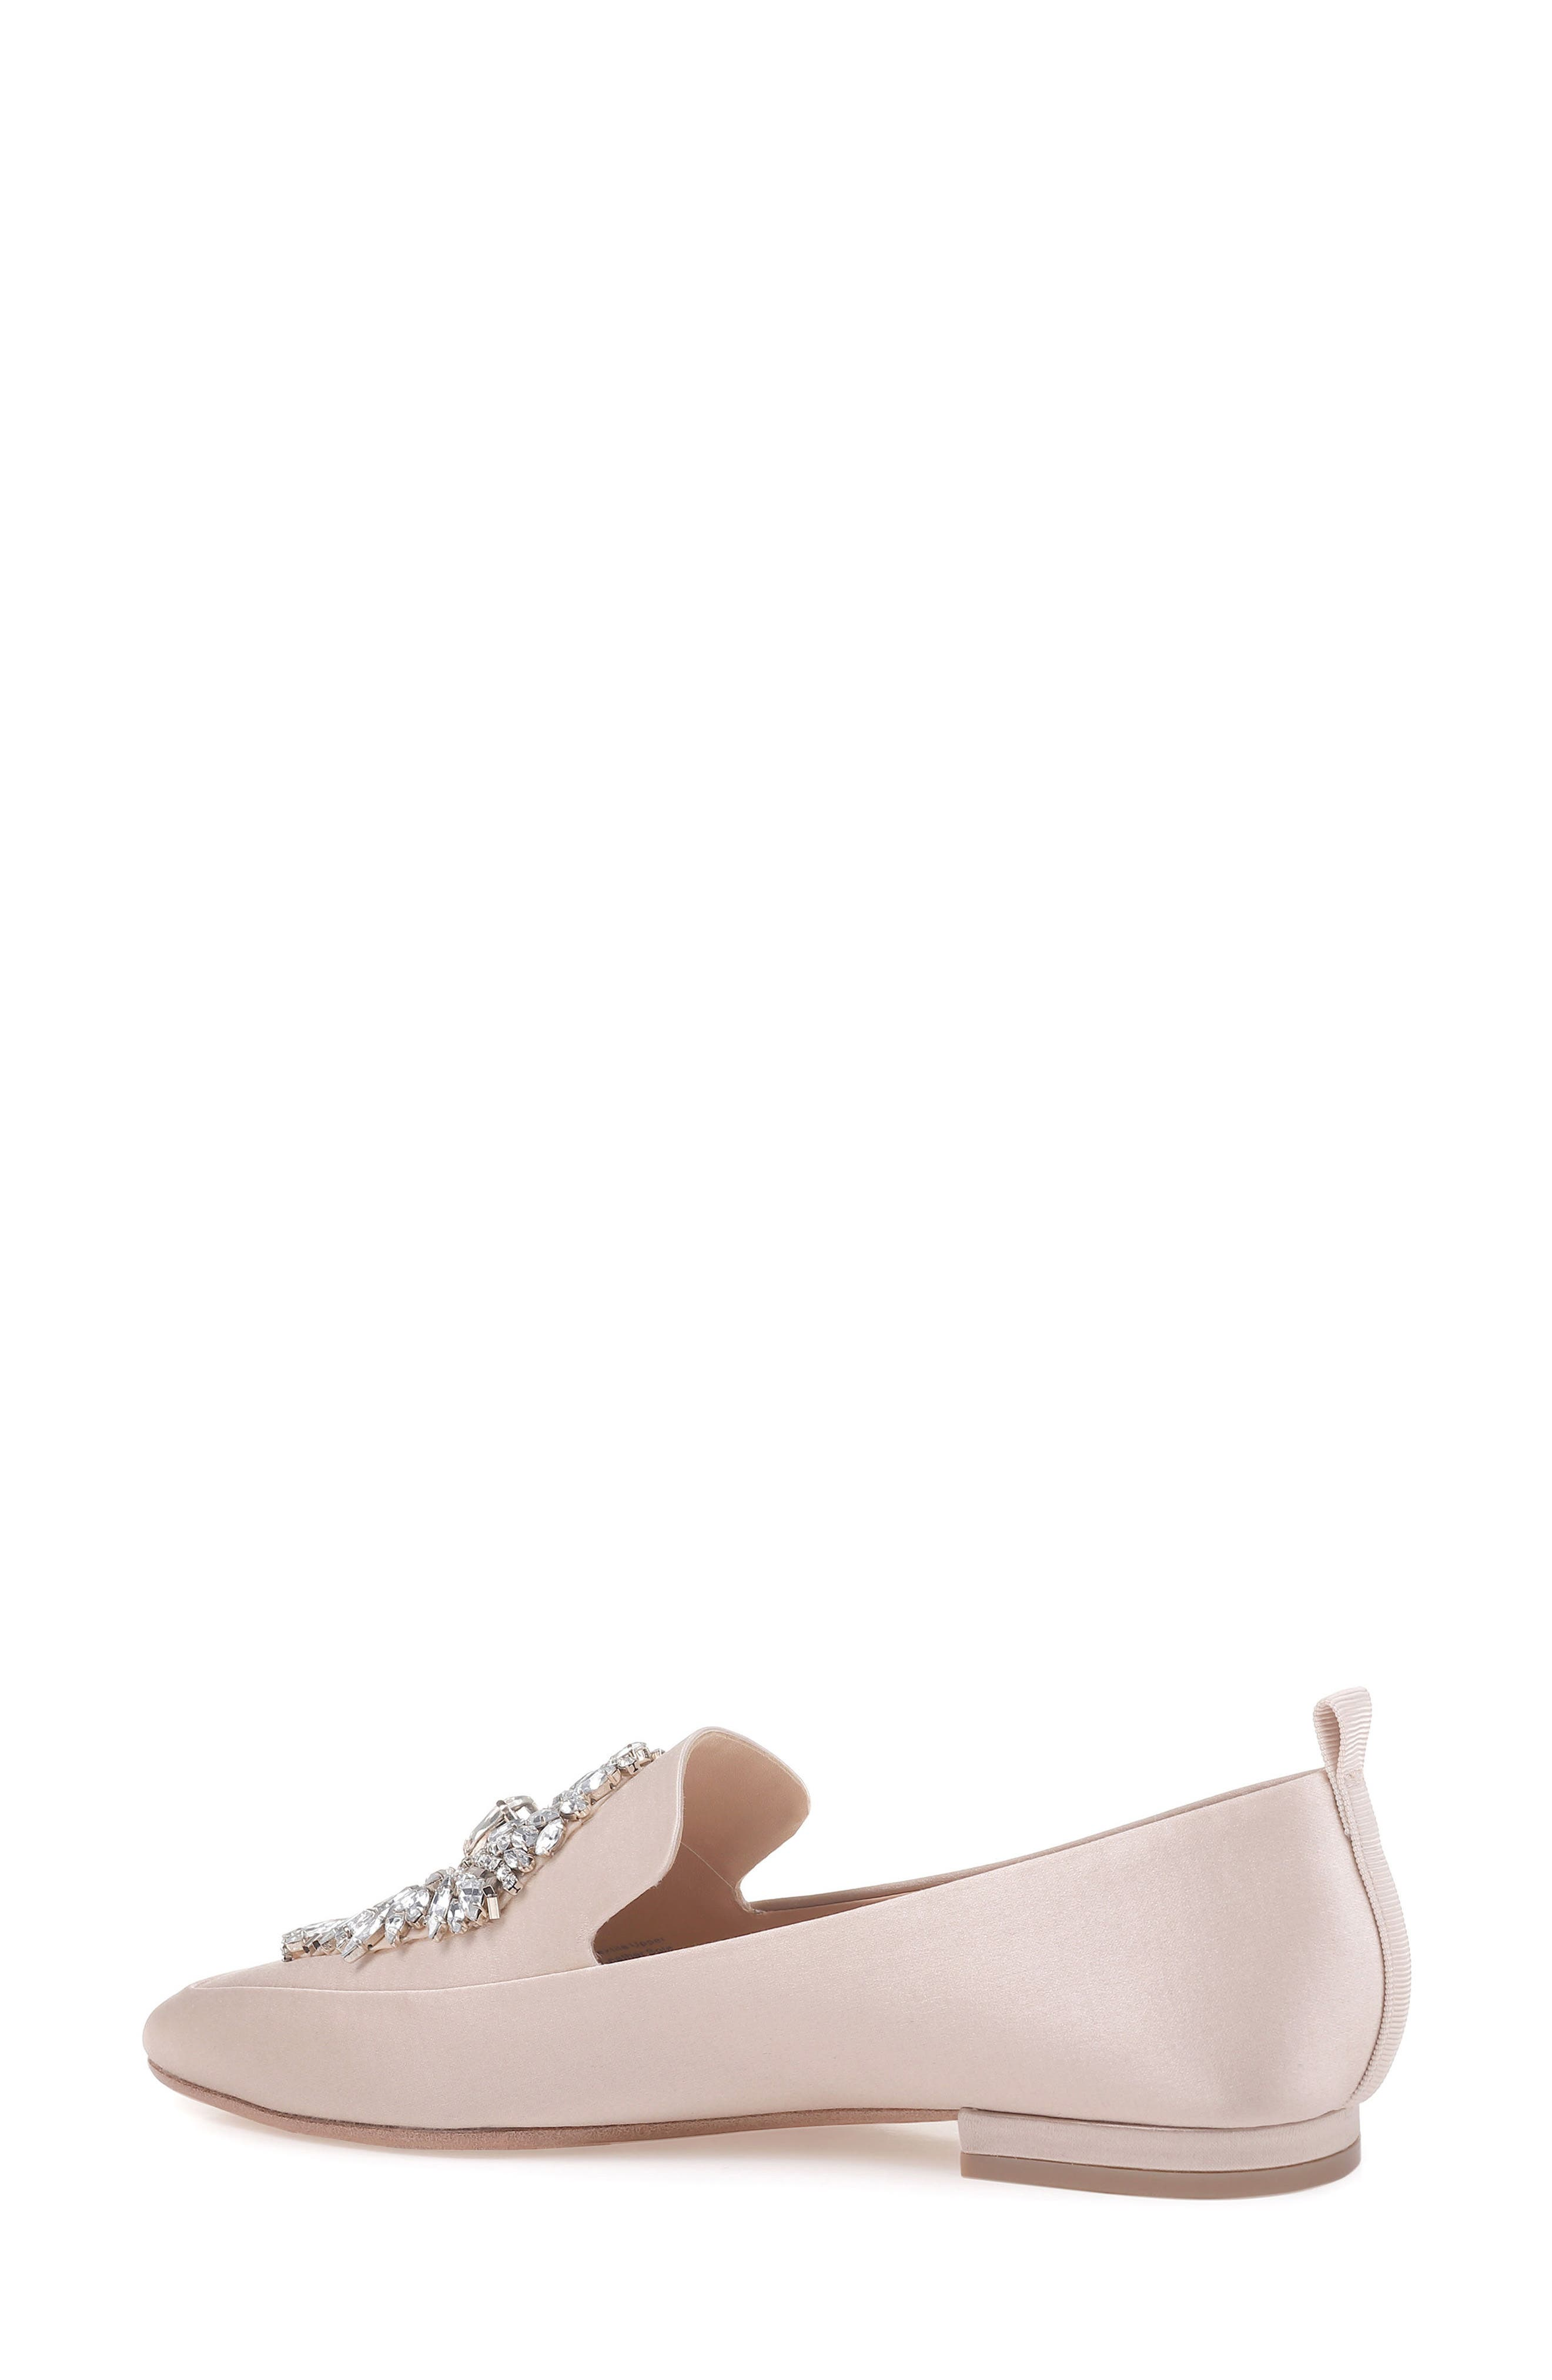 Salma Crystal Embellished Loafer,                             Alternate thumbnail 2, color,                             Nude Satin